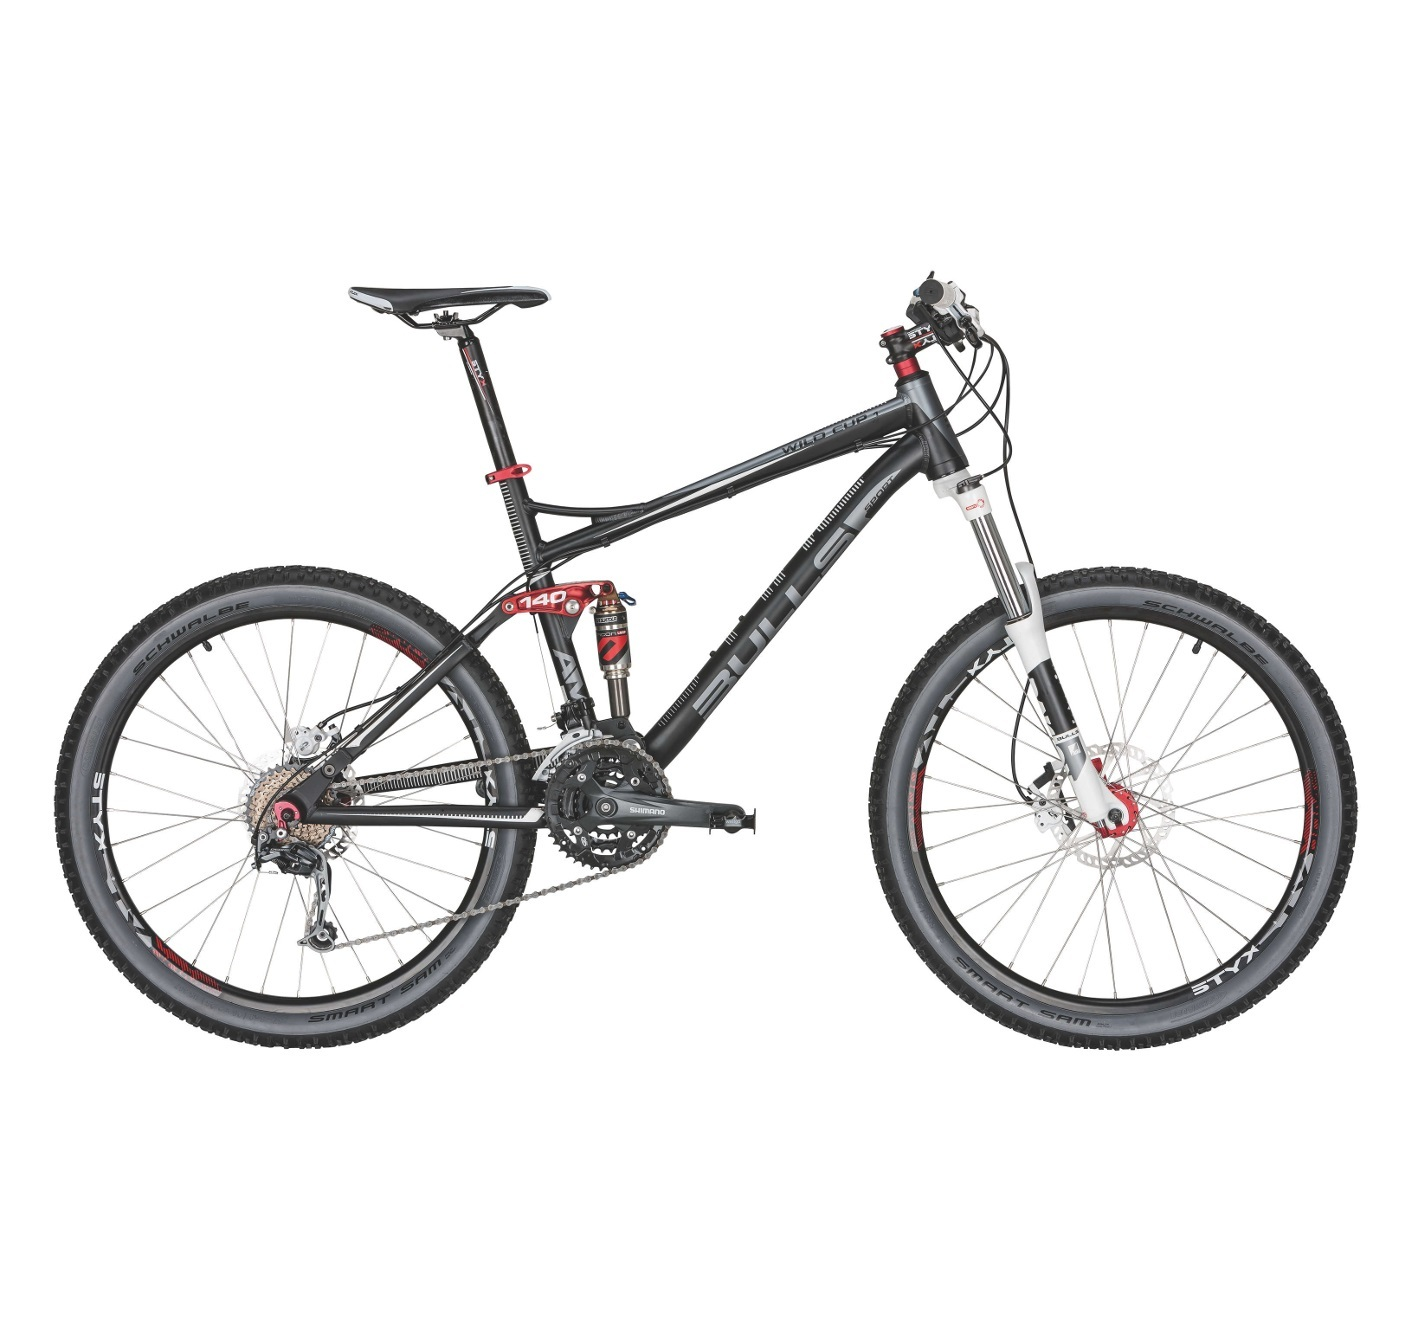 mountainbike bulls wild cup 1 fahrrad 26 zoll shimano. Black Bedroom Furniture Sets. Home Design Ideas